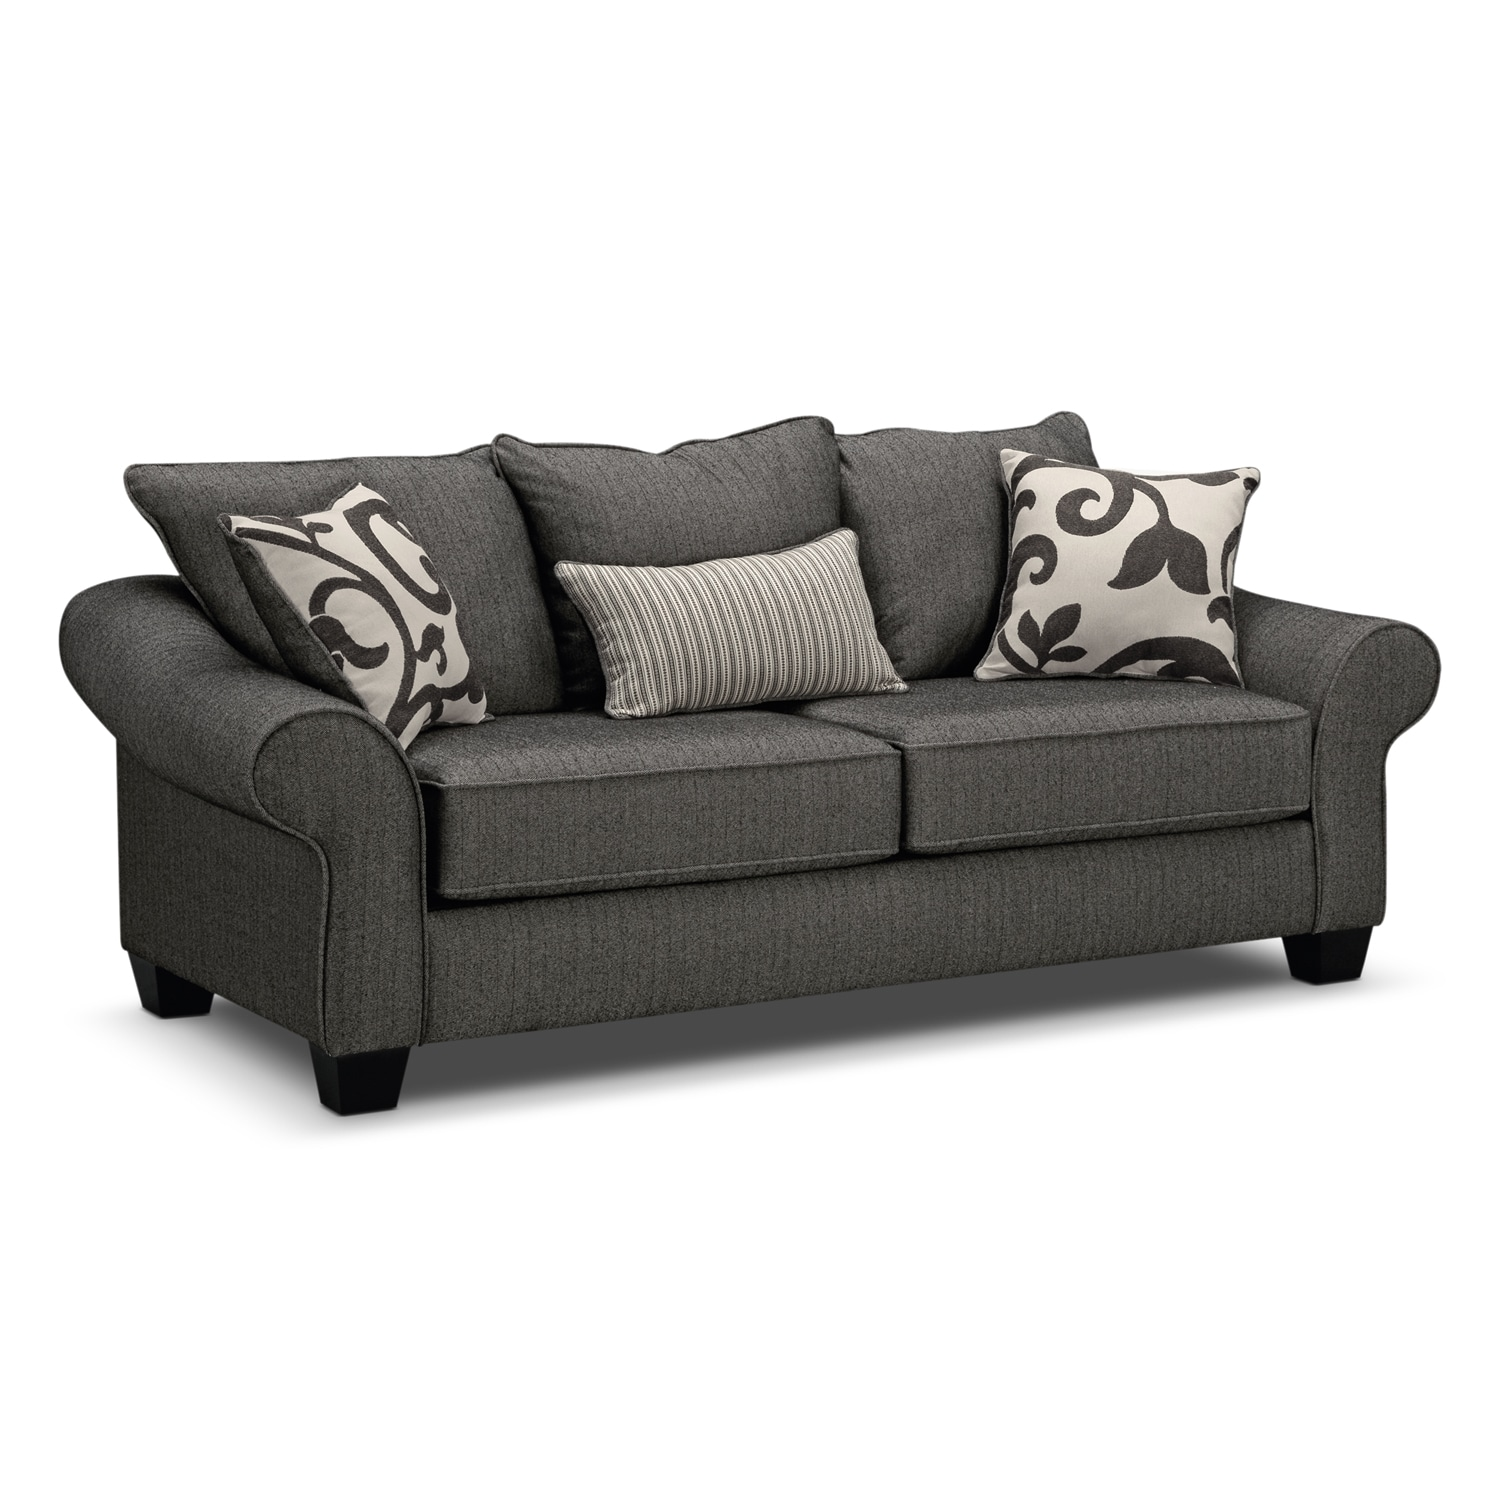 Colette Full Memory Foam Sleeper Sofa   Gray By Kroehler